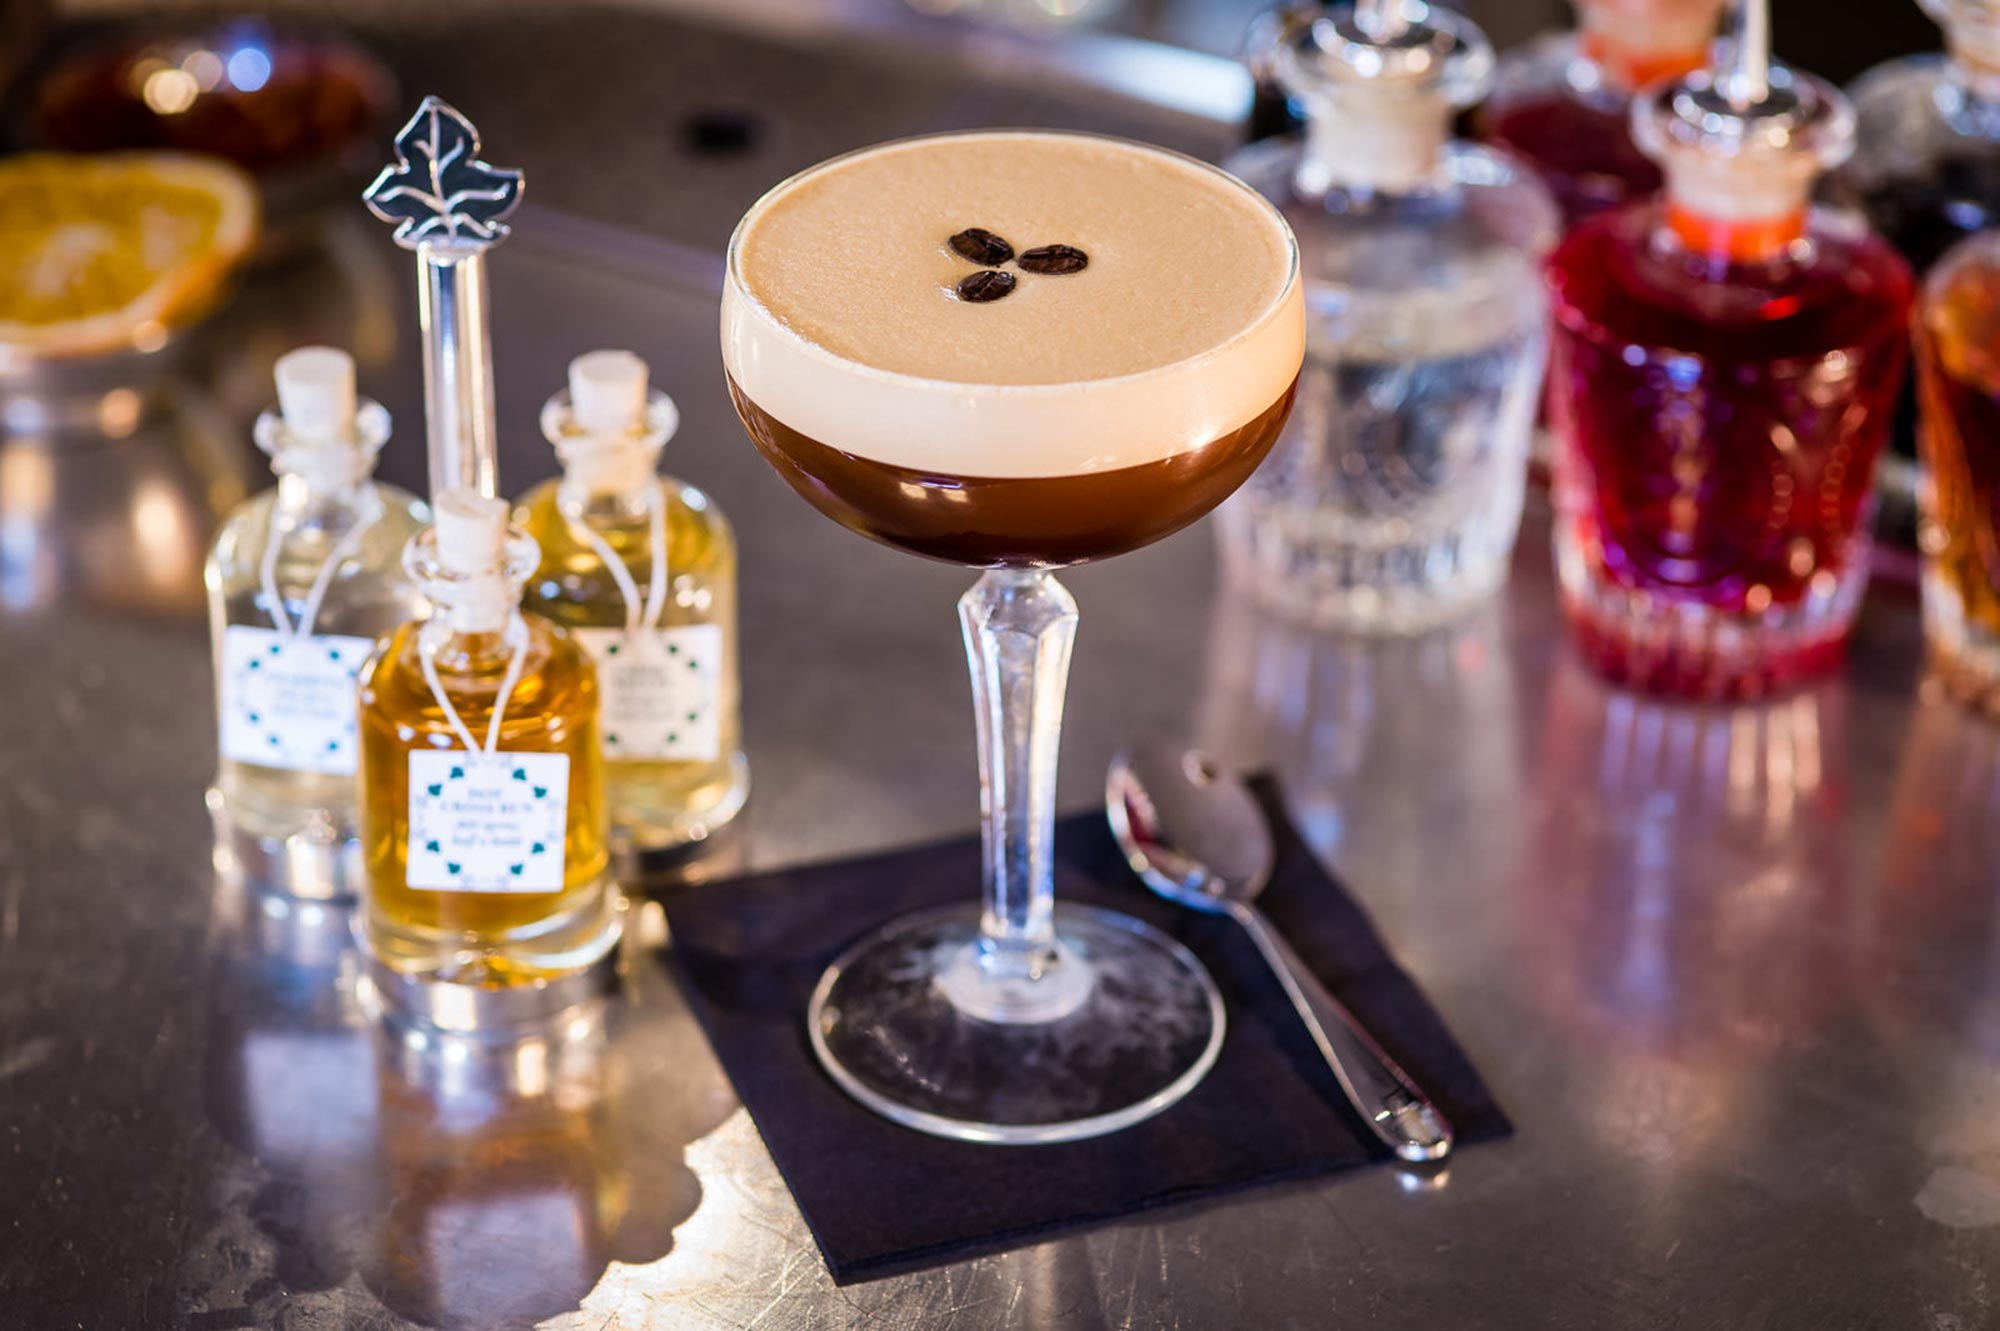 The Ivy Collection Espresso Martini and Infusions - The Ivy Chelsea Garden - The Ivy Chelsea Garden